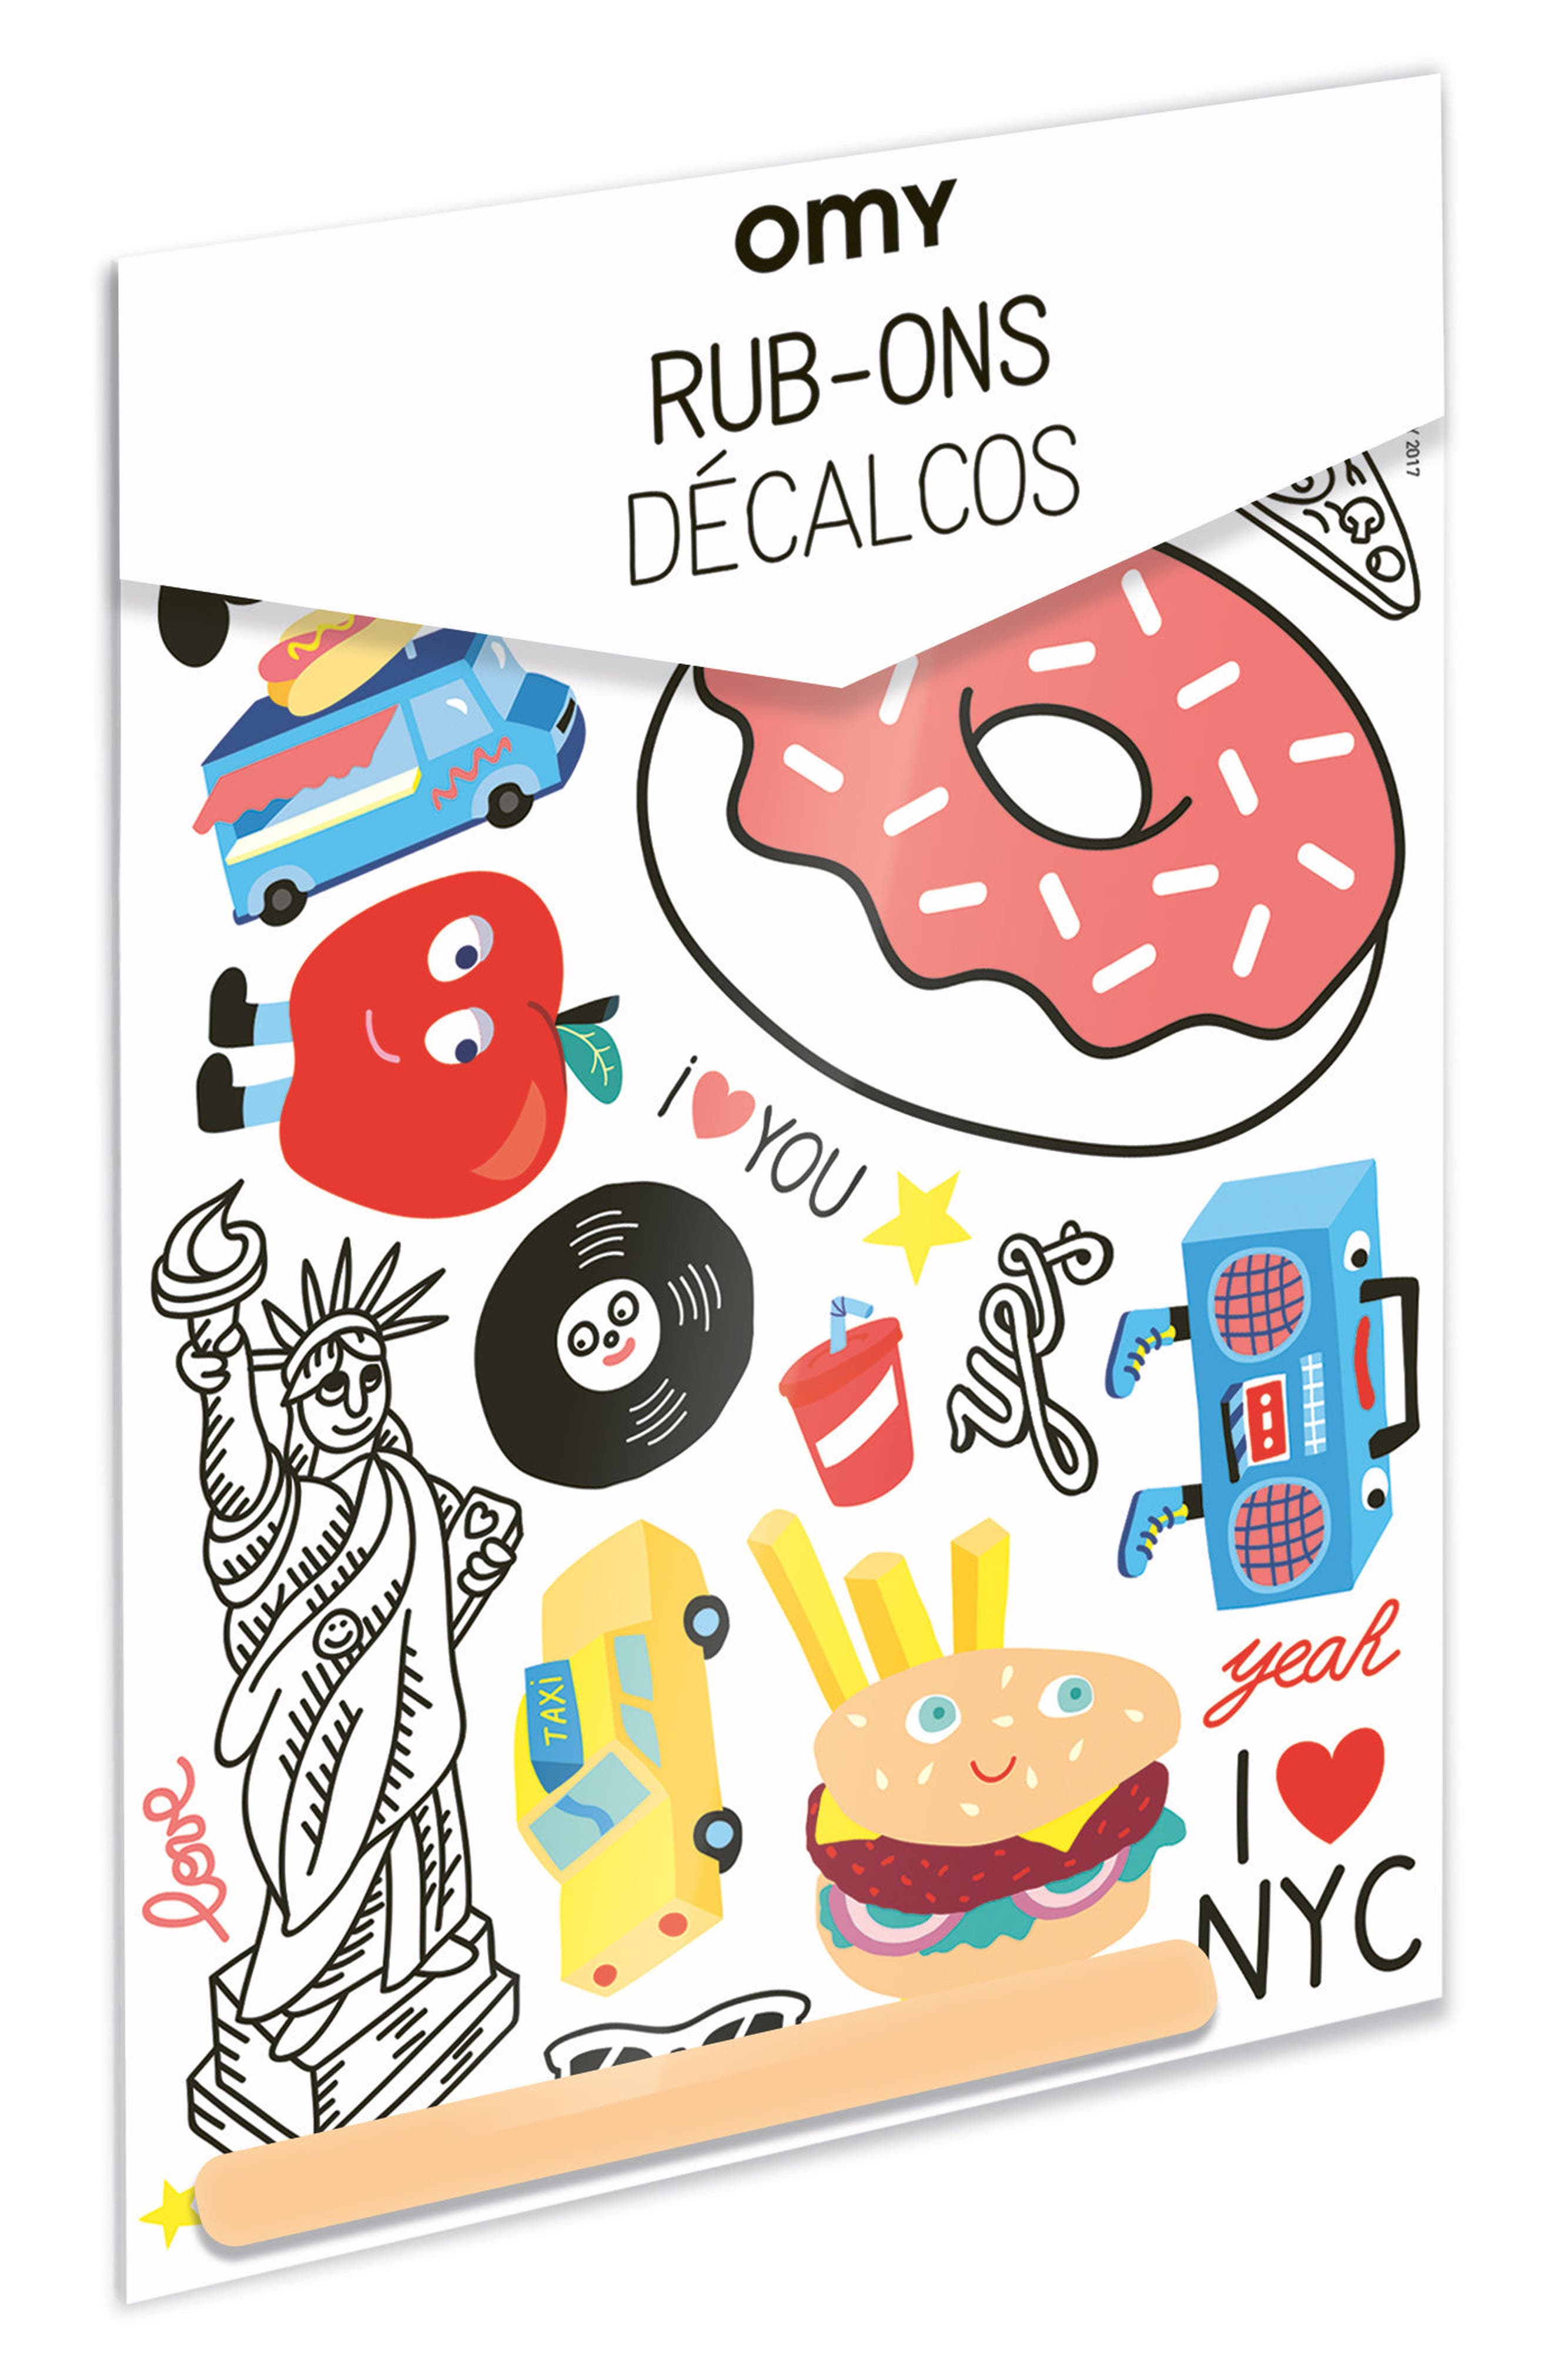 Alternate Image 1 Selected - OMY New York City Set of 20 Temporary Rub-On Decals